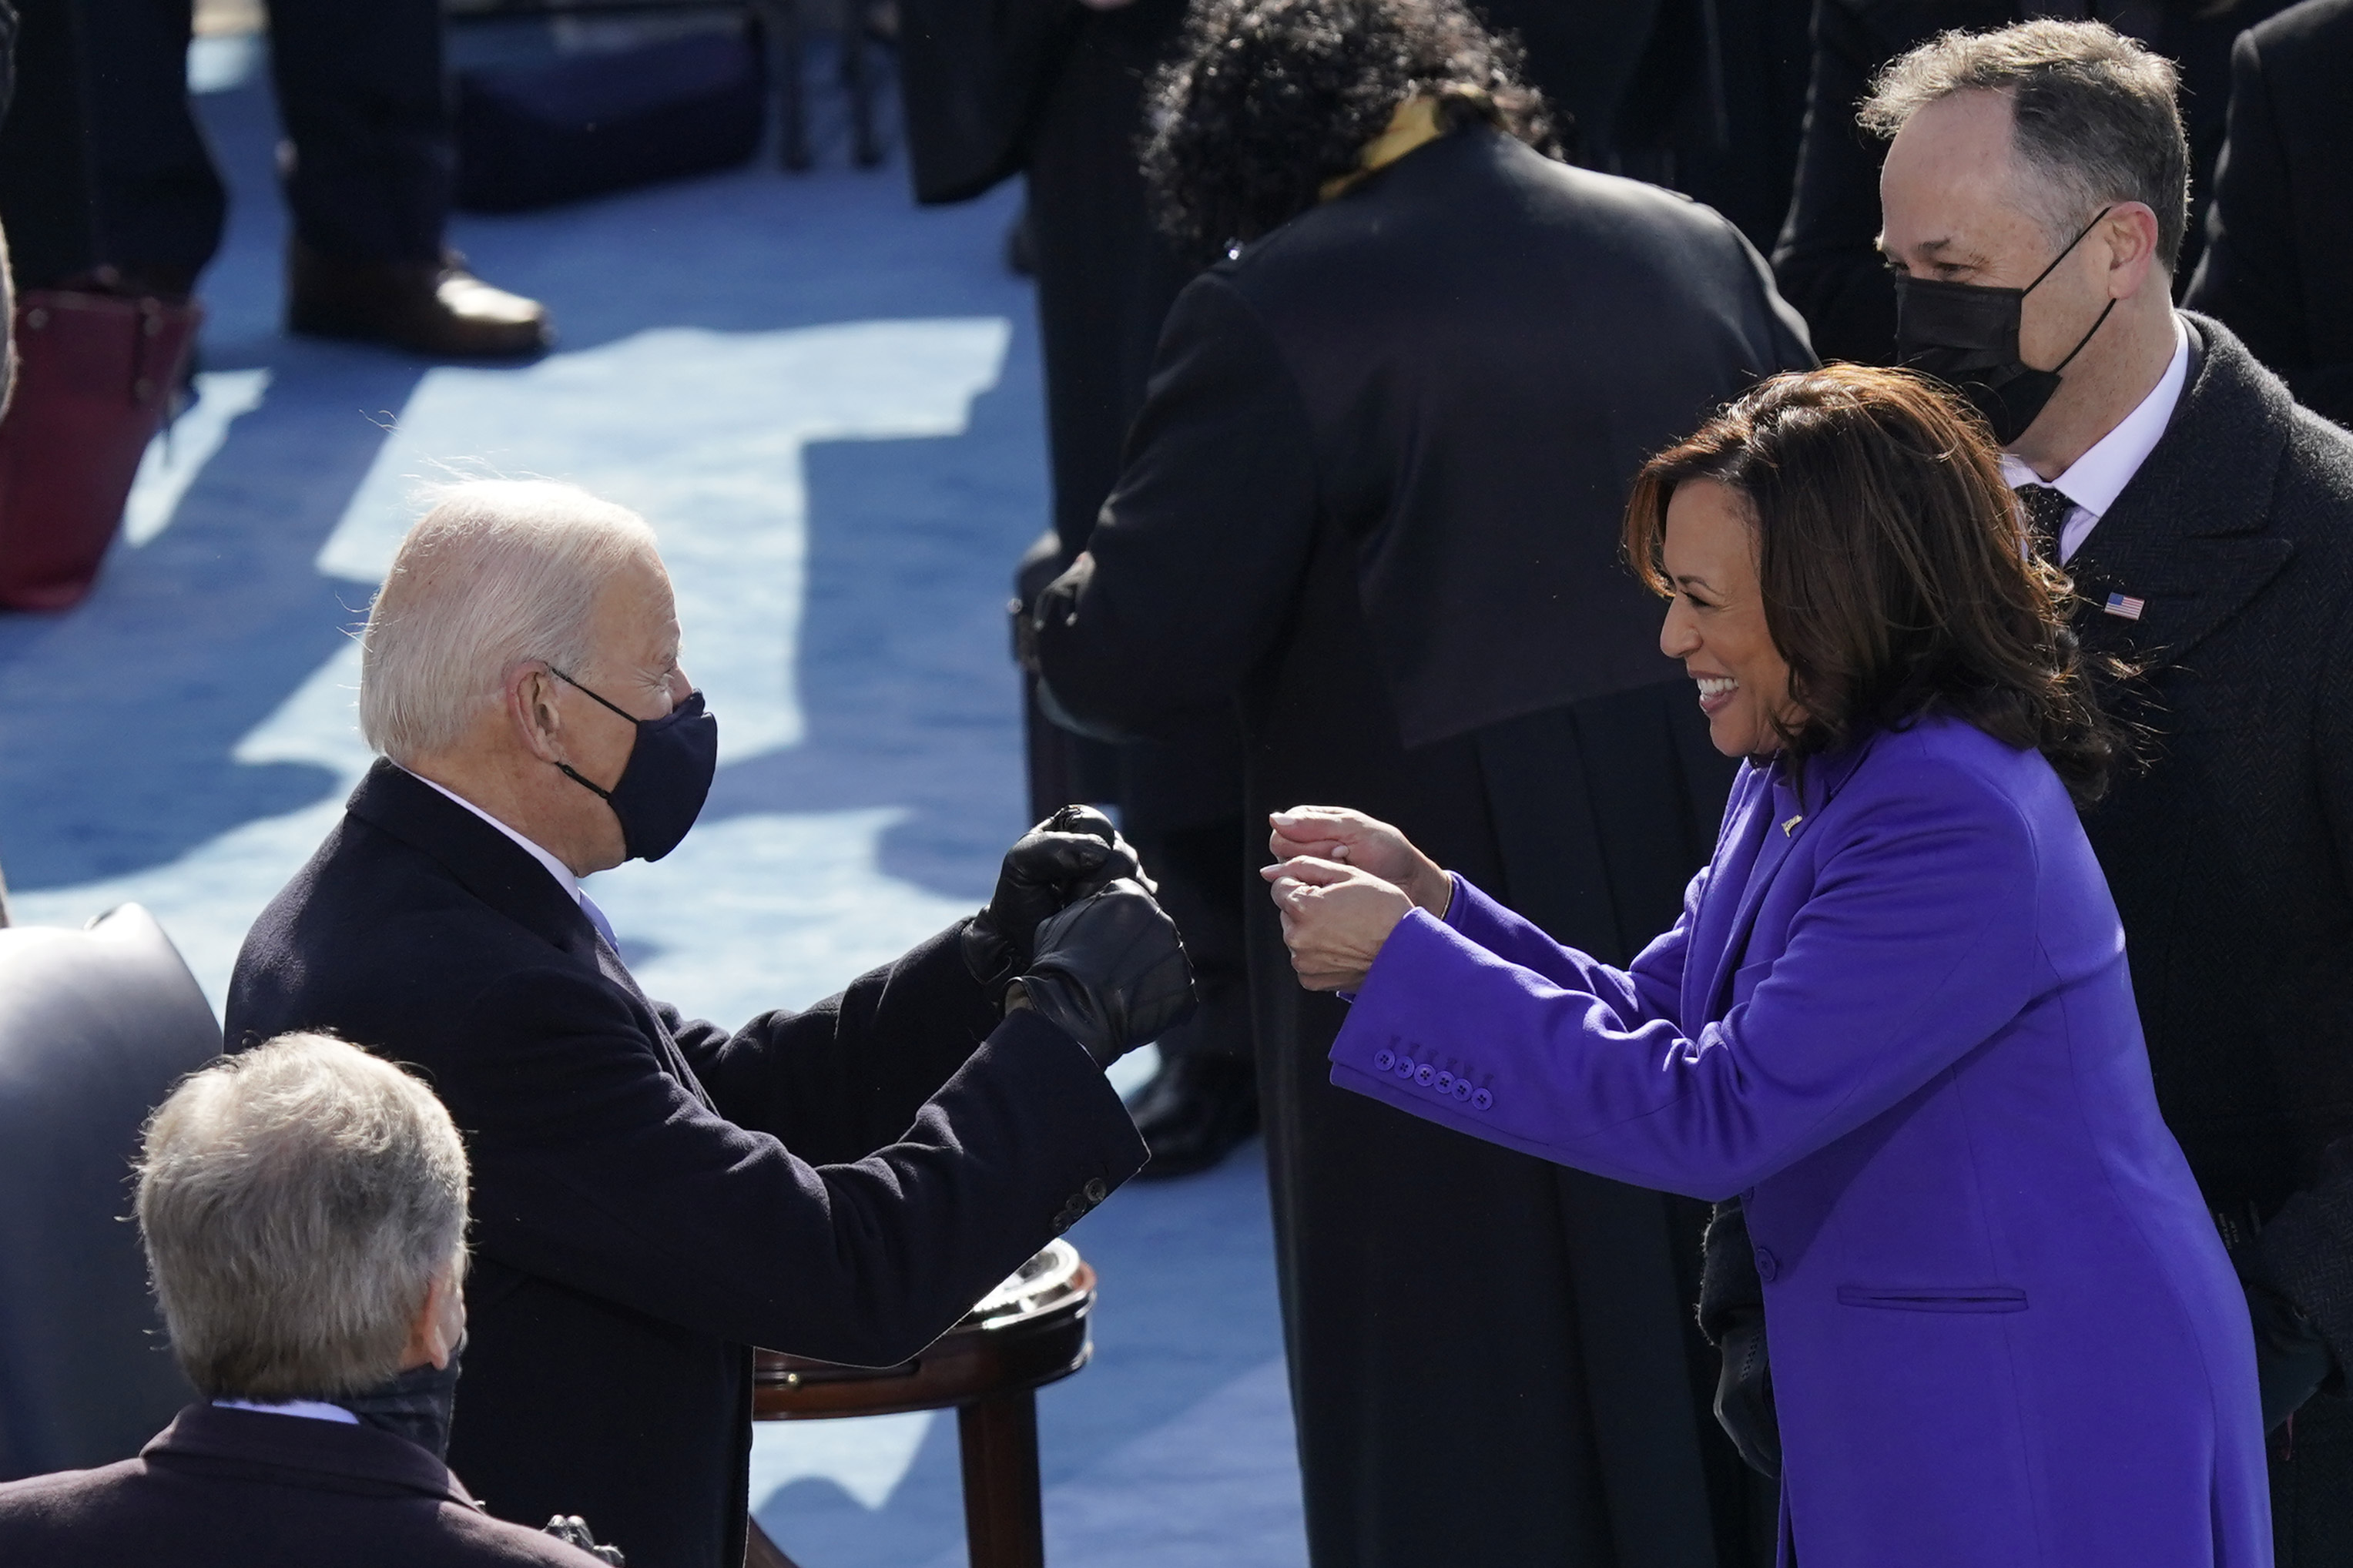 Joe Biden congratulates Kamala Harris after she was sworn in as vice president